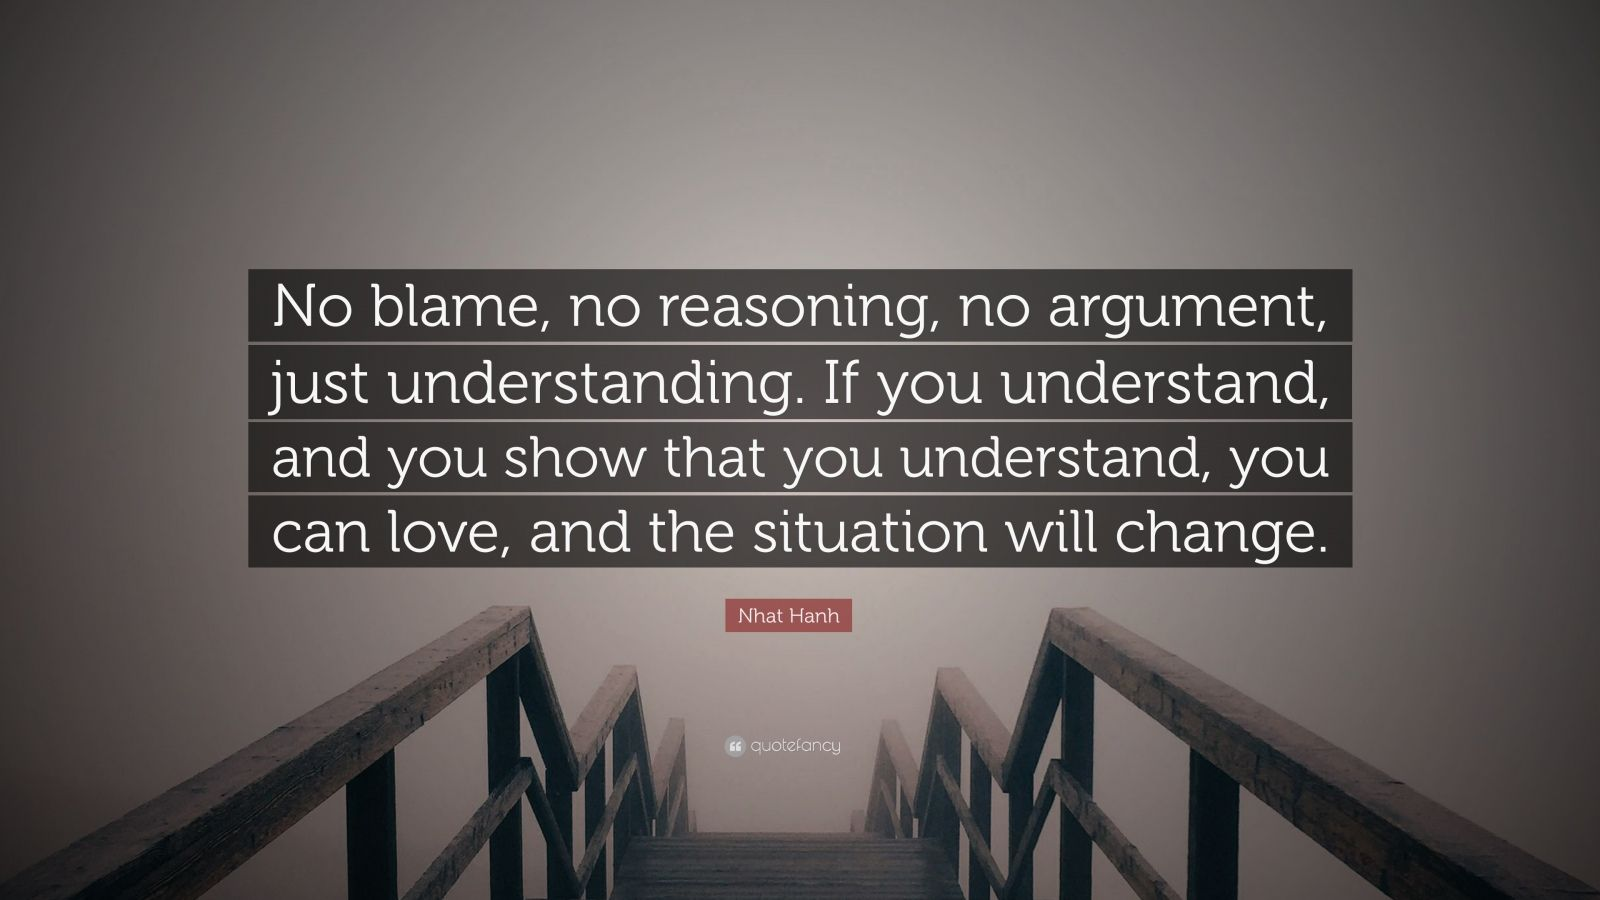 """Nhat Hanh Quote: """"No blame, no reasoning, no argument, just understanding. If you understand, and you show that you understand, you can love, and the situation will change."""""""